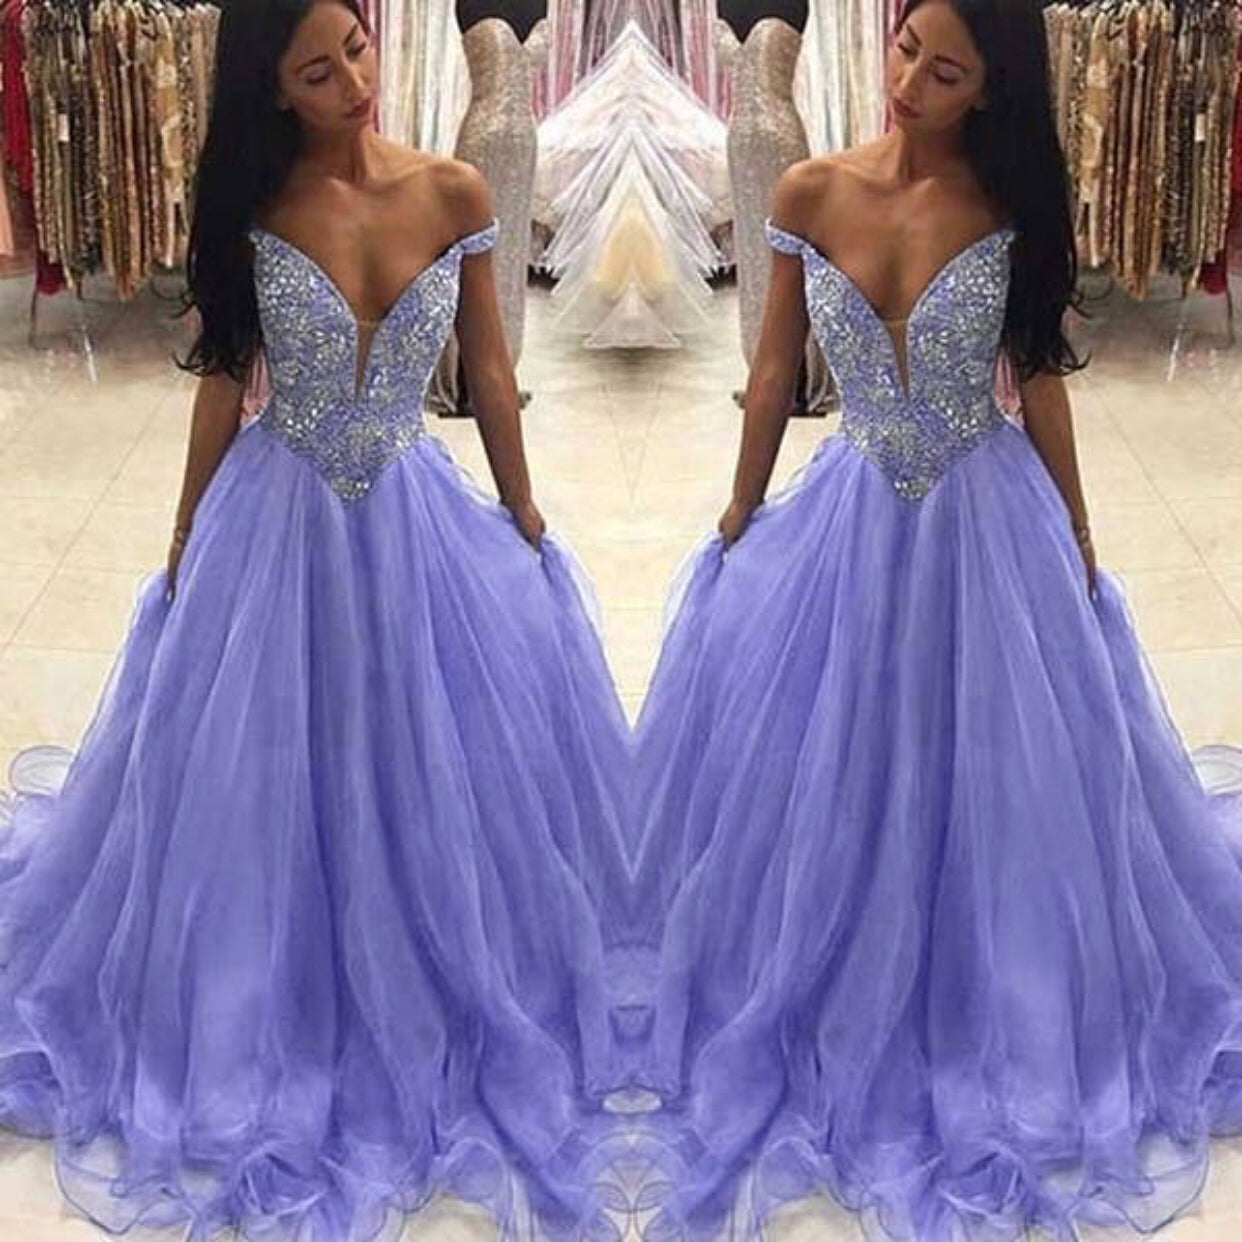 800ee837e35 Off the Shoulder Purple Prom Dresses 2019 A Line Lavender Elegant Beaded  Crystals Prom Gown Long ...